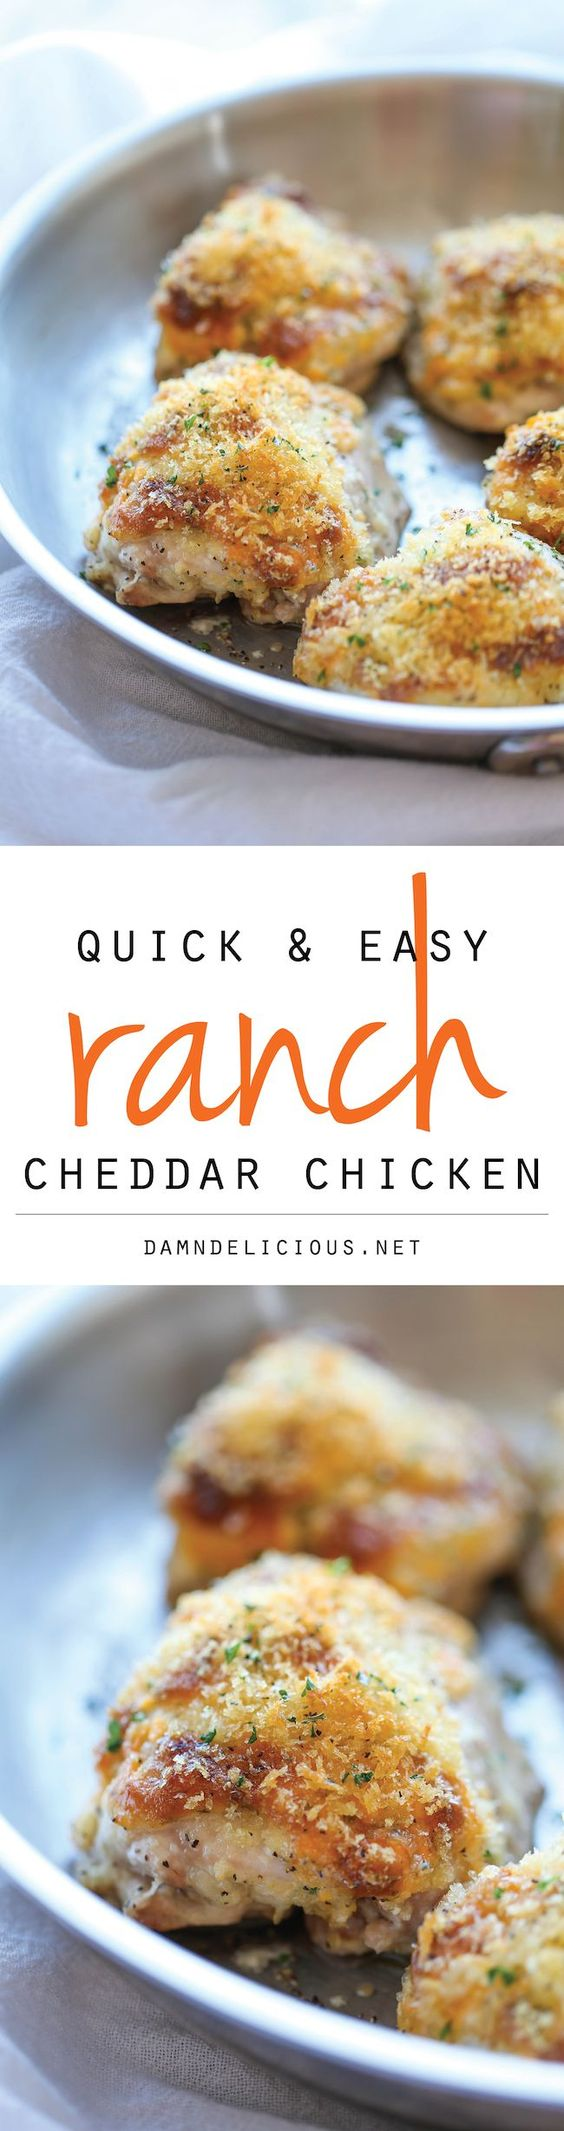 Ranch Cheddar Chicken - The quickest and easiest baked chicken with an ...